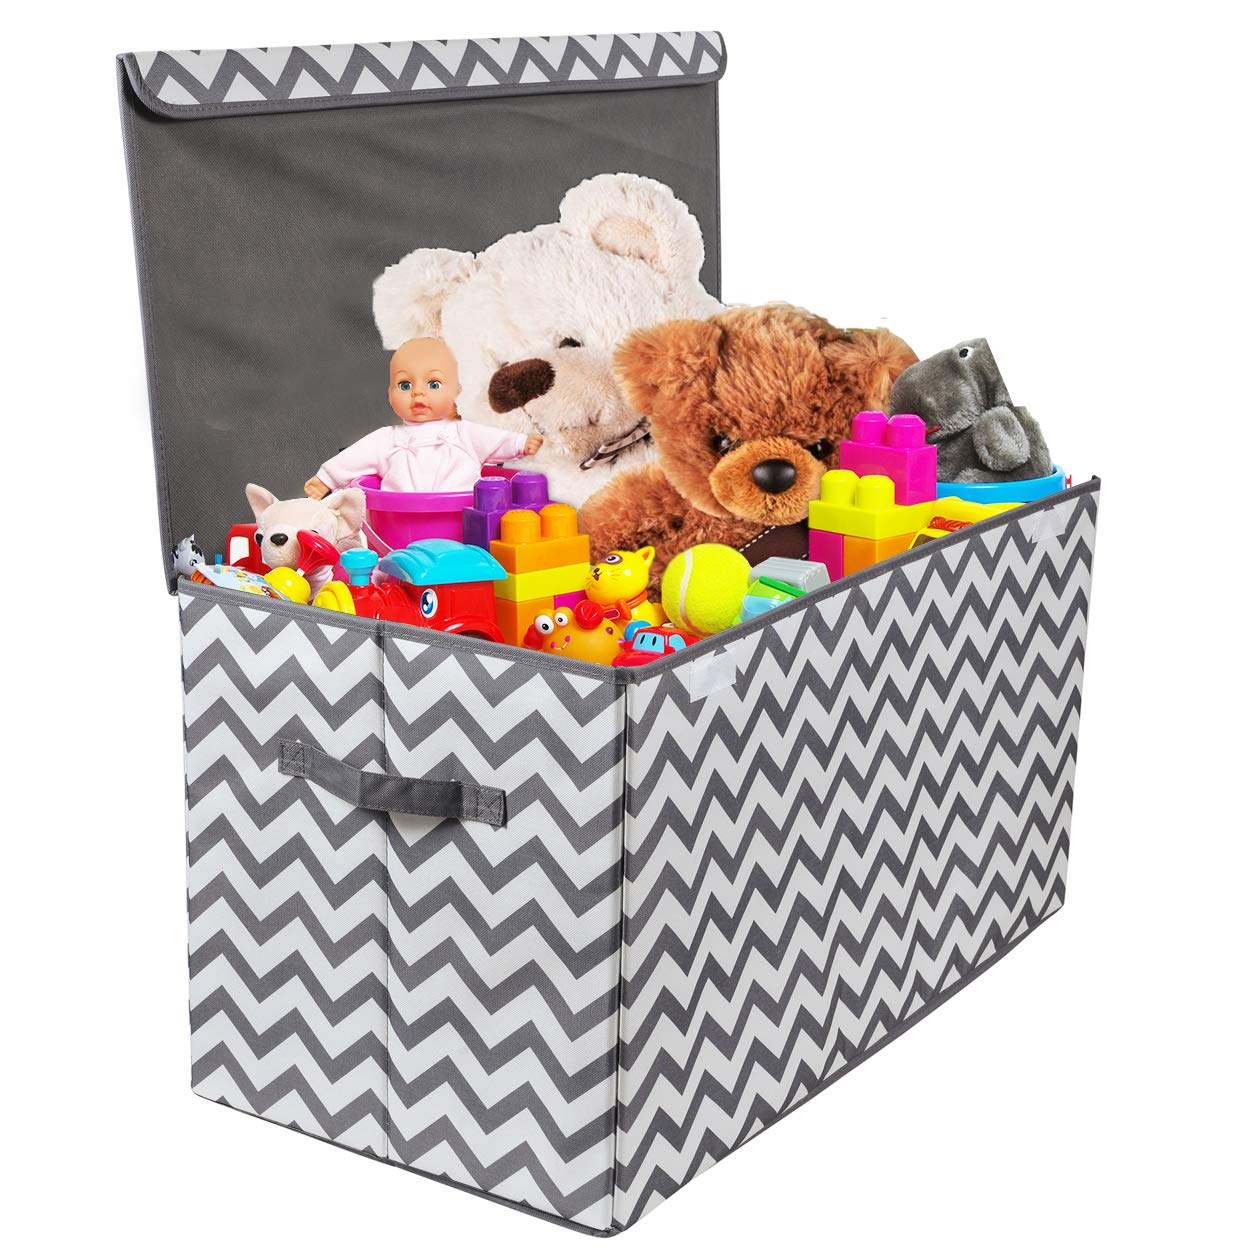 Nursery - Extra Large Collapsible Toys Bin with Flip-top lid for Children /& Dog Toys Great Box for Boys and Girls Closet etc Woffit Toy Storage Organizer Chest for Kids /& Living Room Playroom